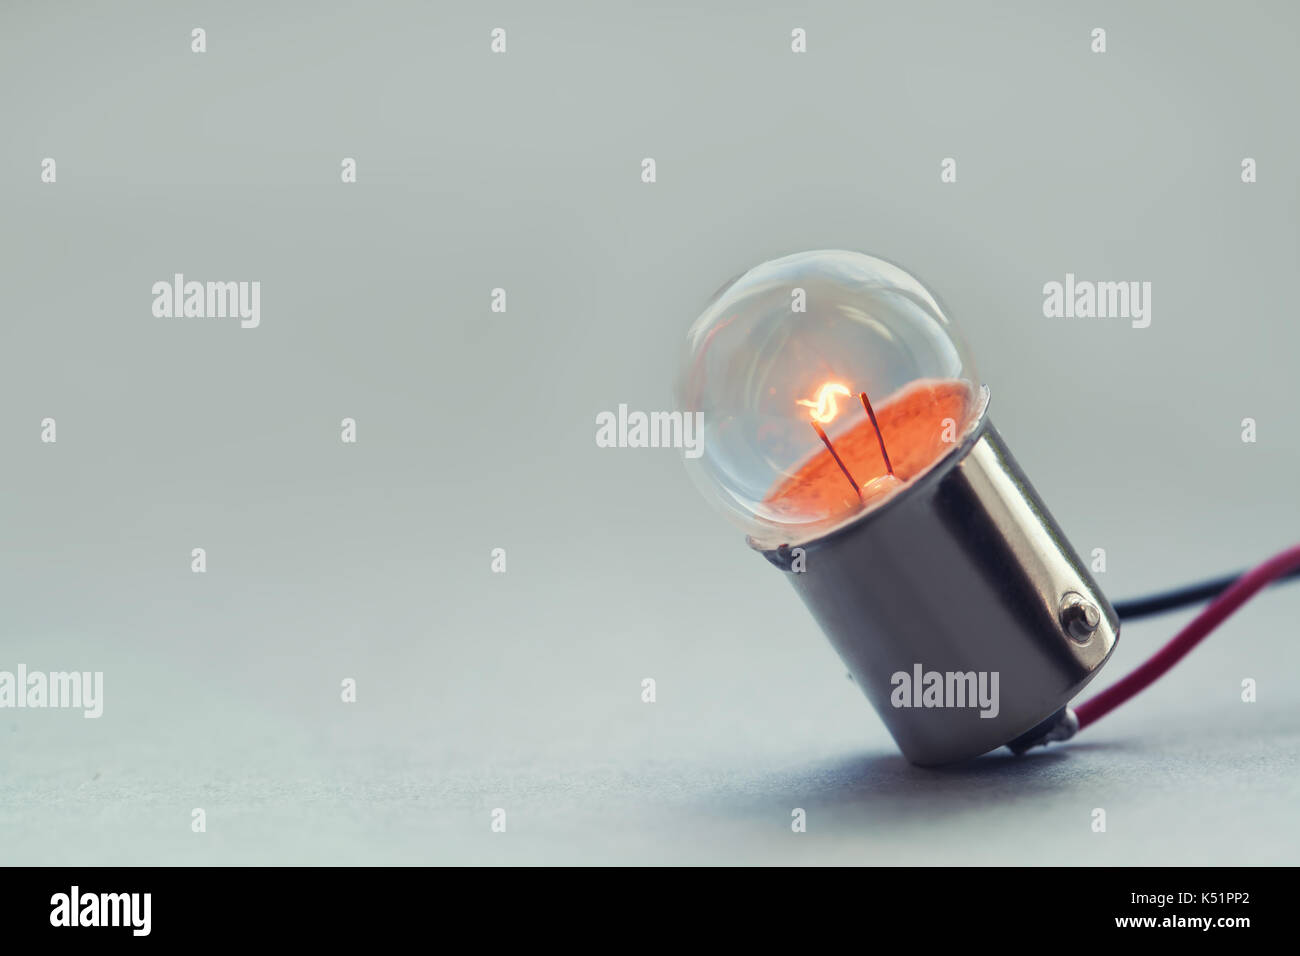 Close up glowing light bulb, Retro style filament lamp macro view. Warm colors background. Soft focus. Copy space - Stock Image